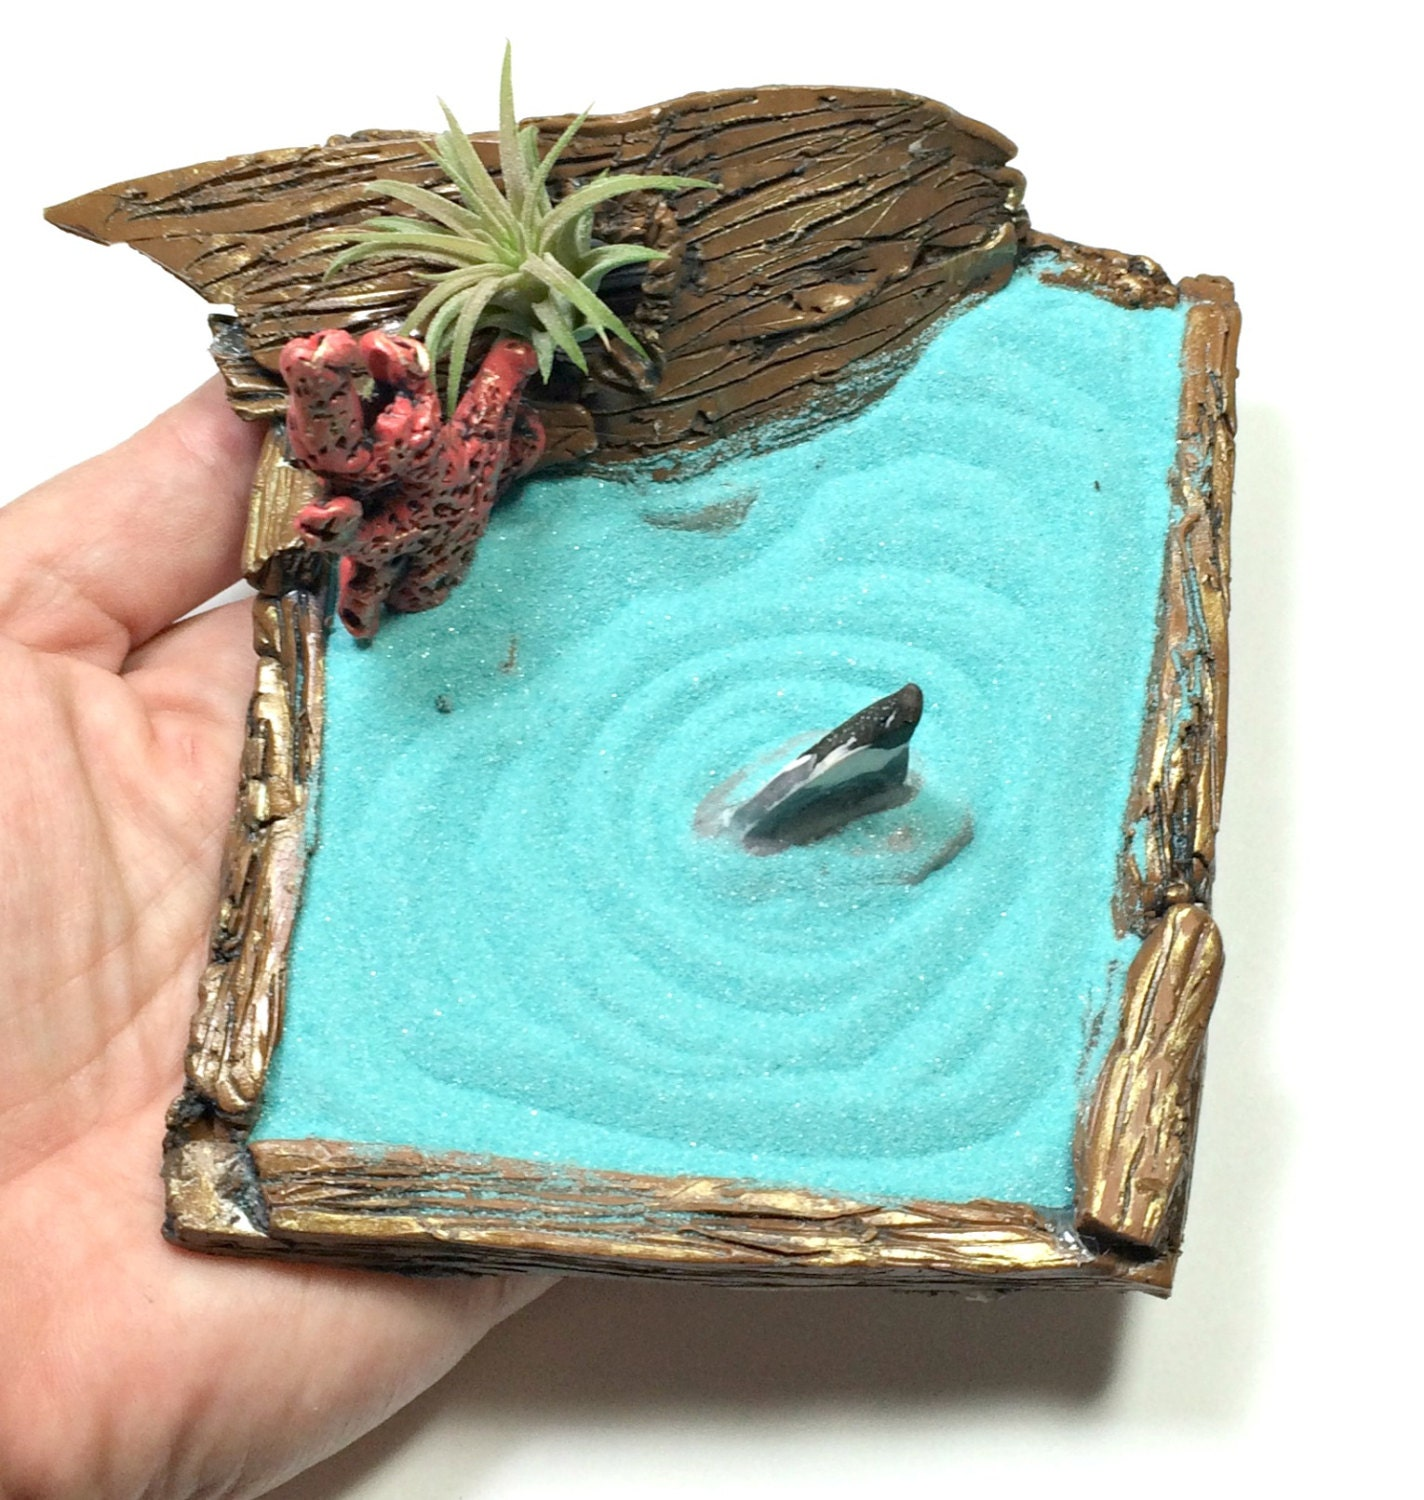 Shipwreck miniature zen garden tabletop zen garden ocean for Table zen garden